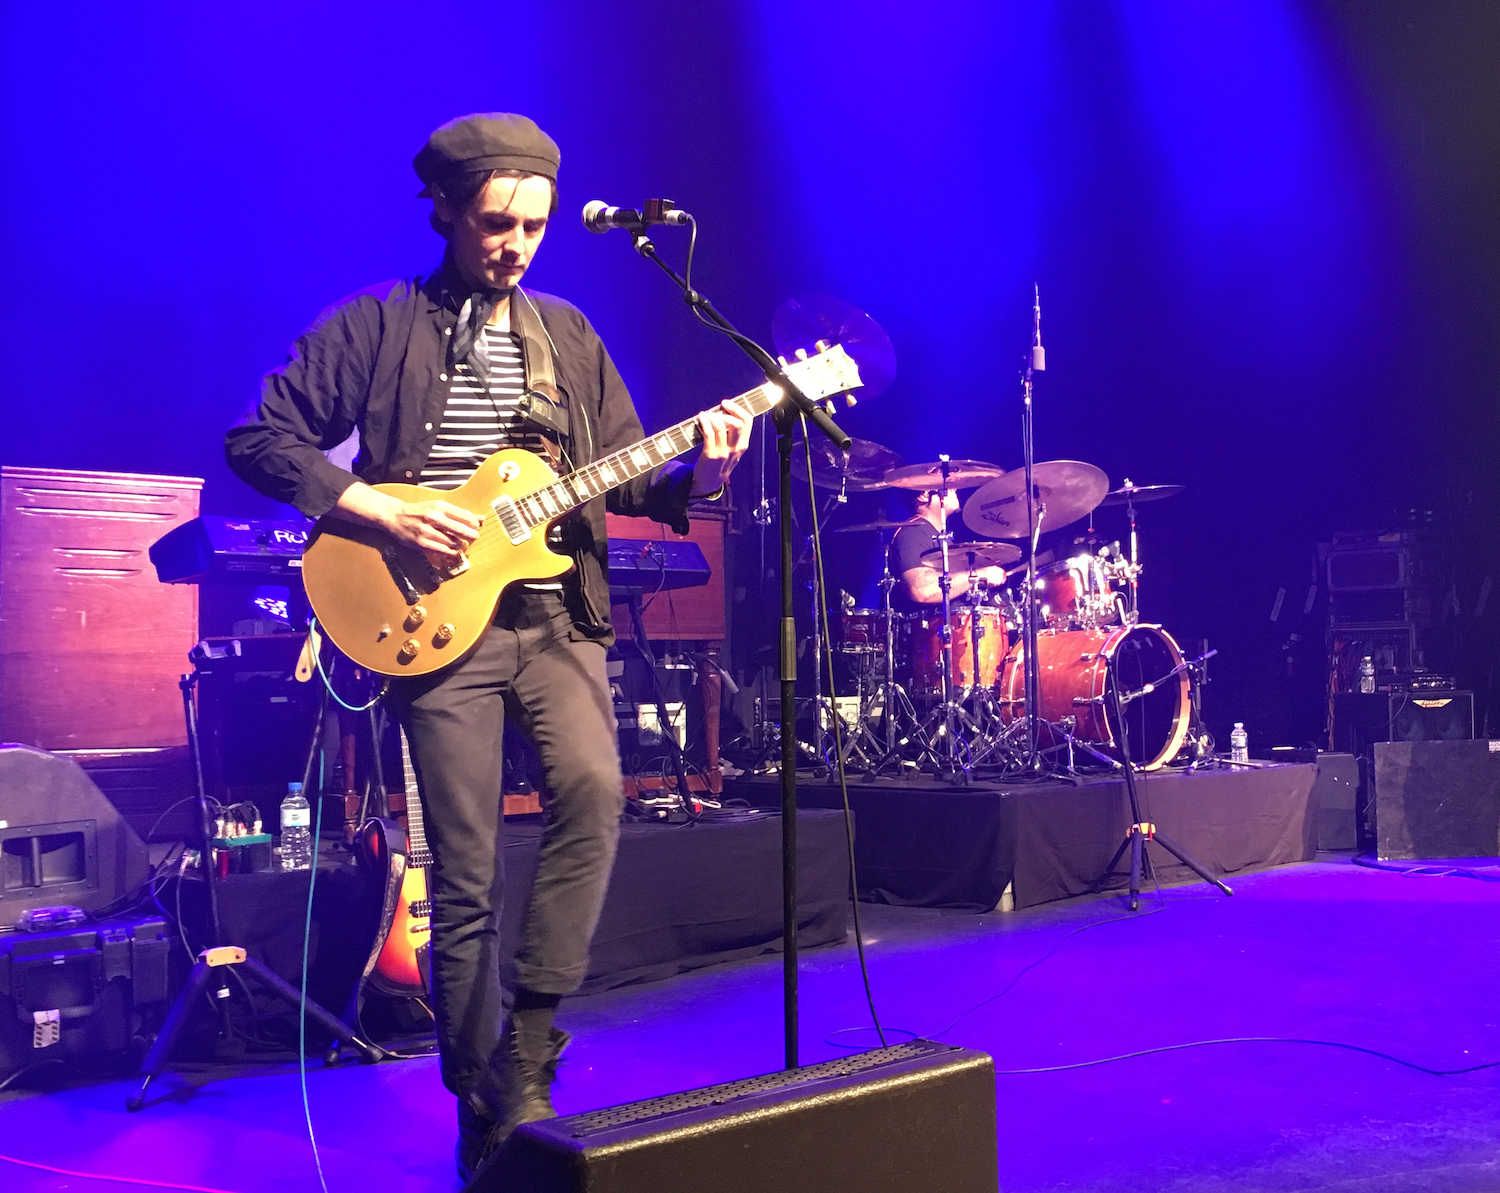 Zane Carney interview on stage in Paris with Jonny Lang